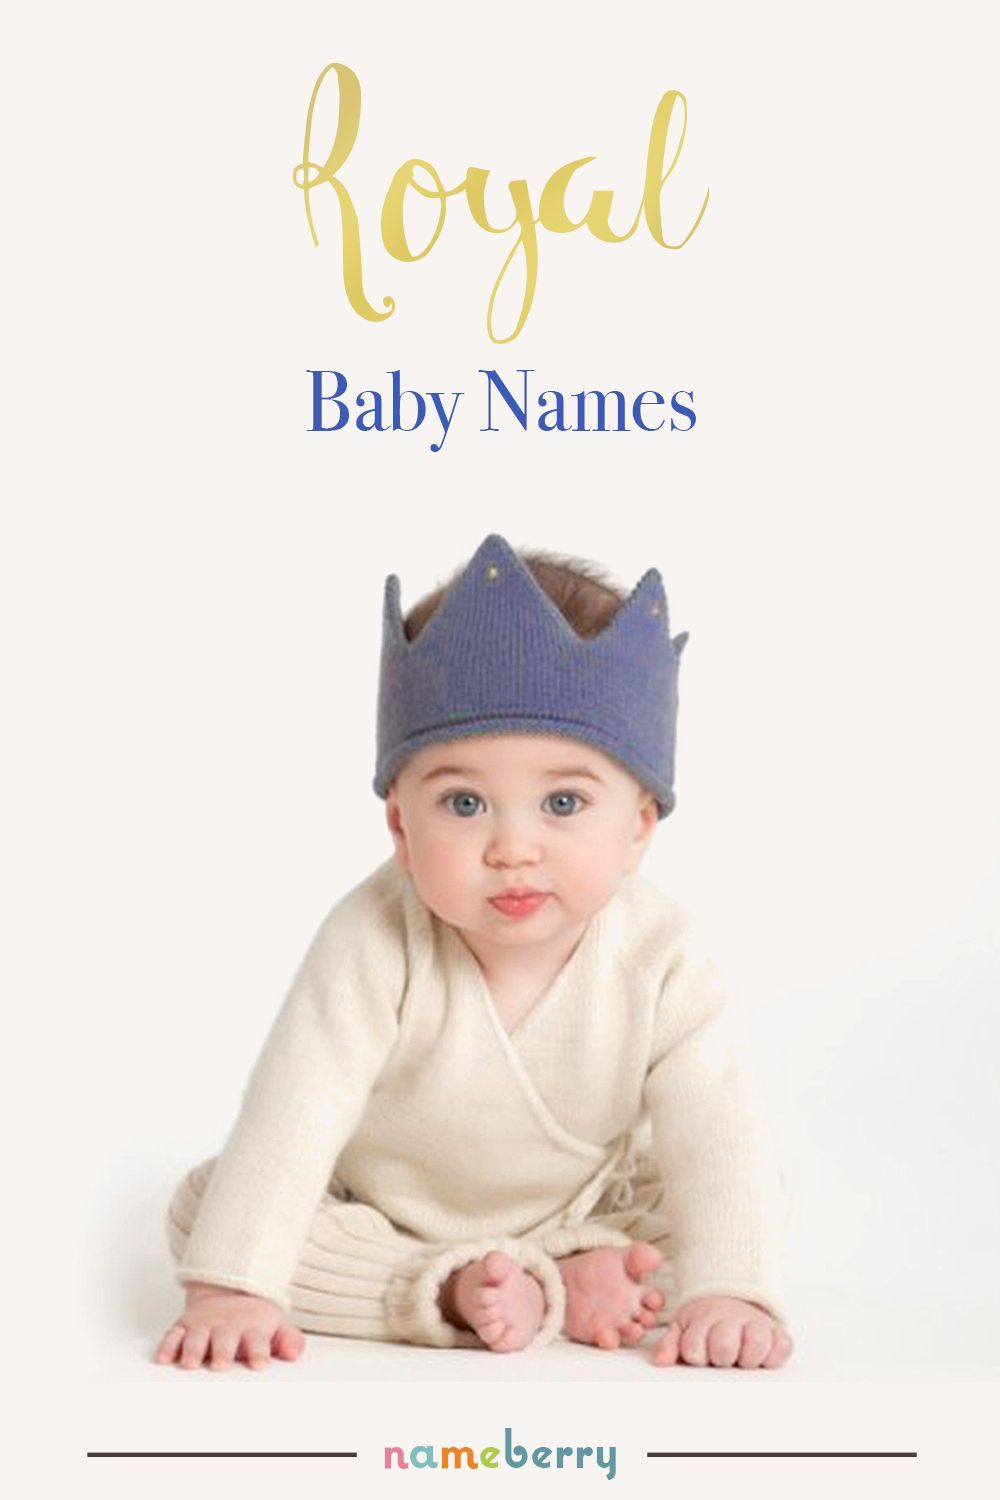 61 Royal Baby Names For Your Little Prince Or Princess Royal Baby Boy Names Traditional Baby Boy Names Baby Girl Names